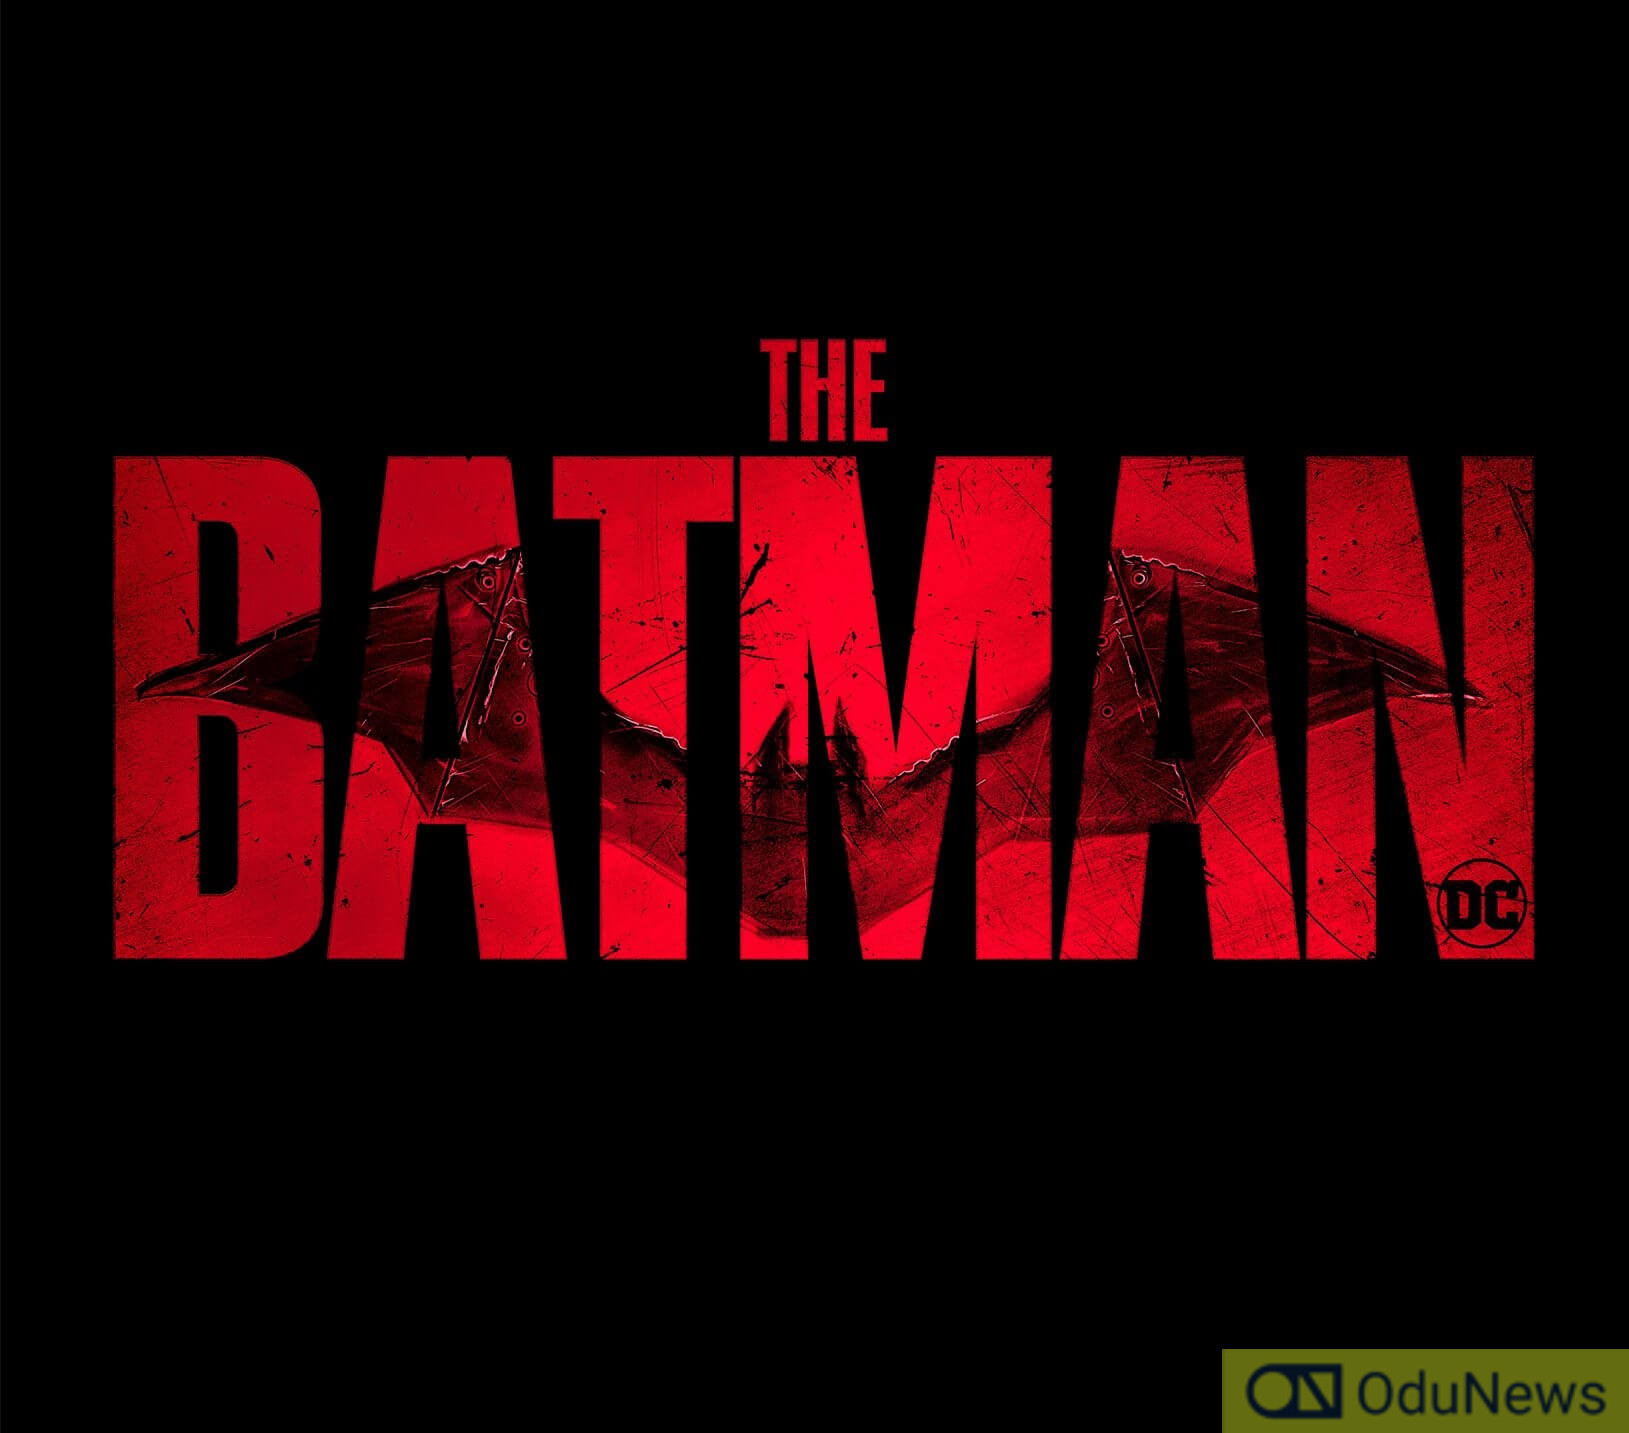 THE BATMAN movie logo